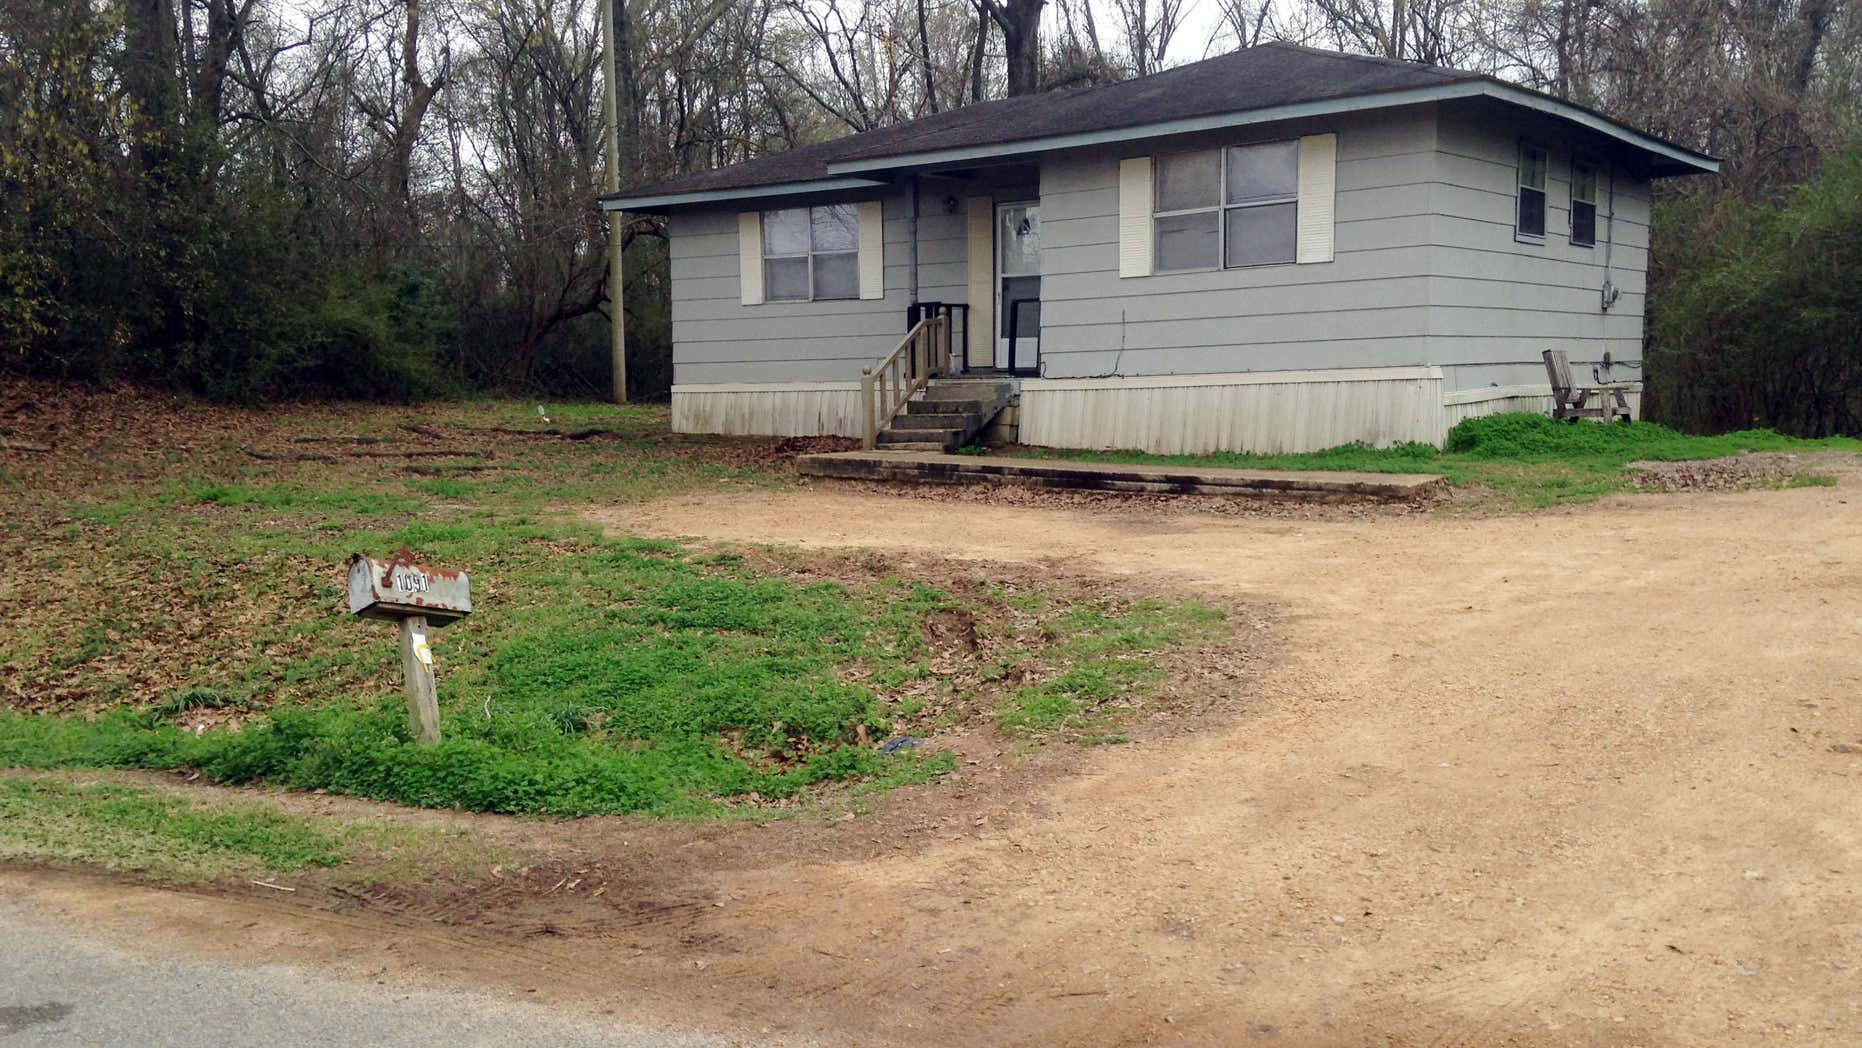 March 20, 2015: The Port Gibson, Miss., home of Otis Byrd, an ex-convict reported missing by his family more than two weeks ago, is shown.